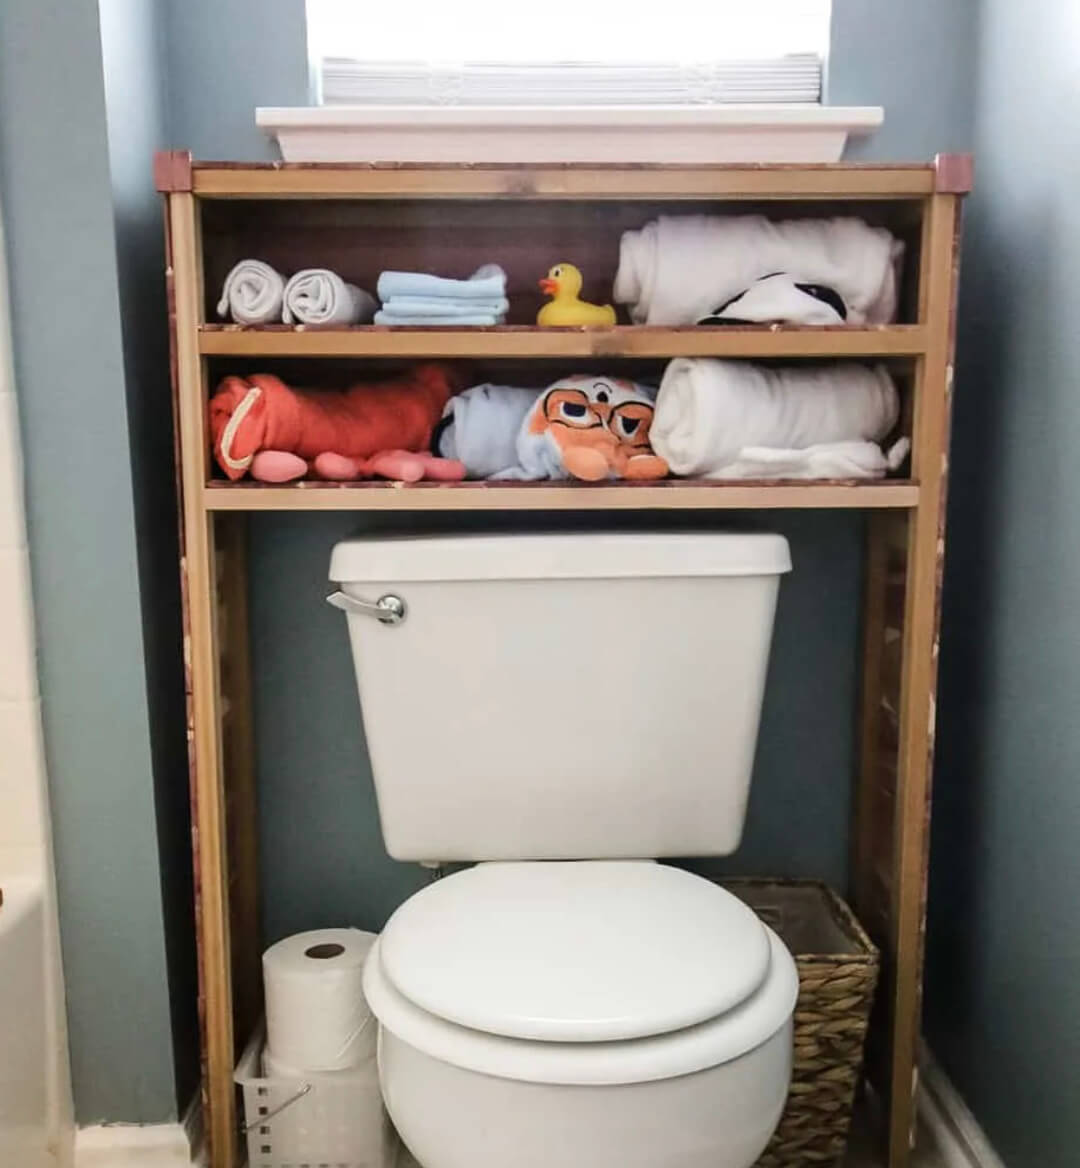 Over 40 amazing over the toilet storage ideas, with actionable tips, inspiration pictures, and products perfect for your space.